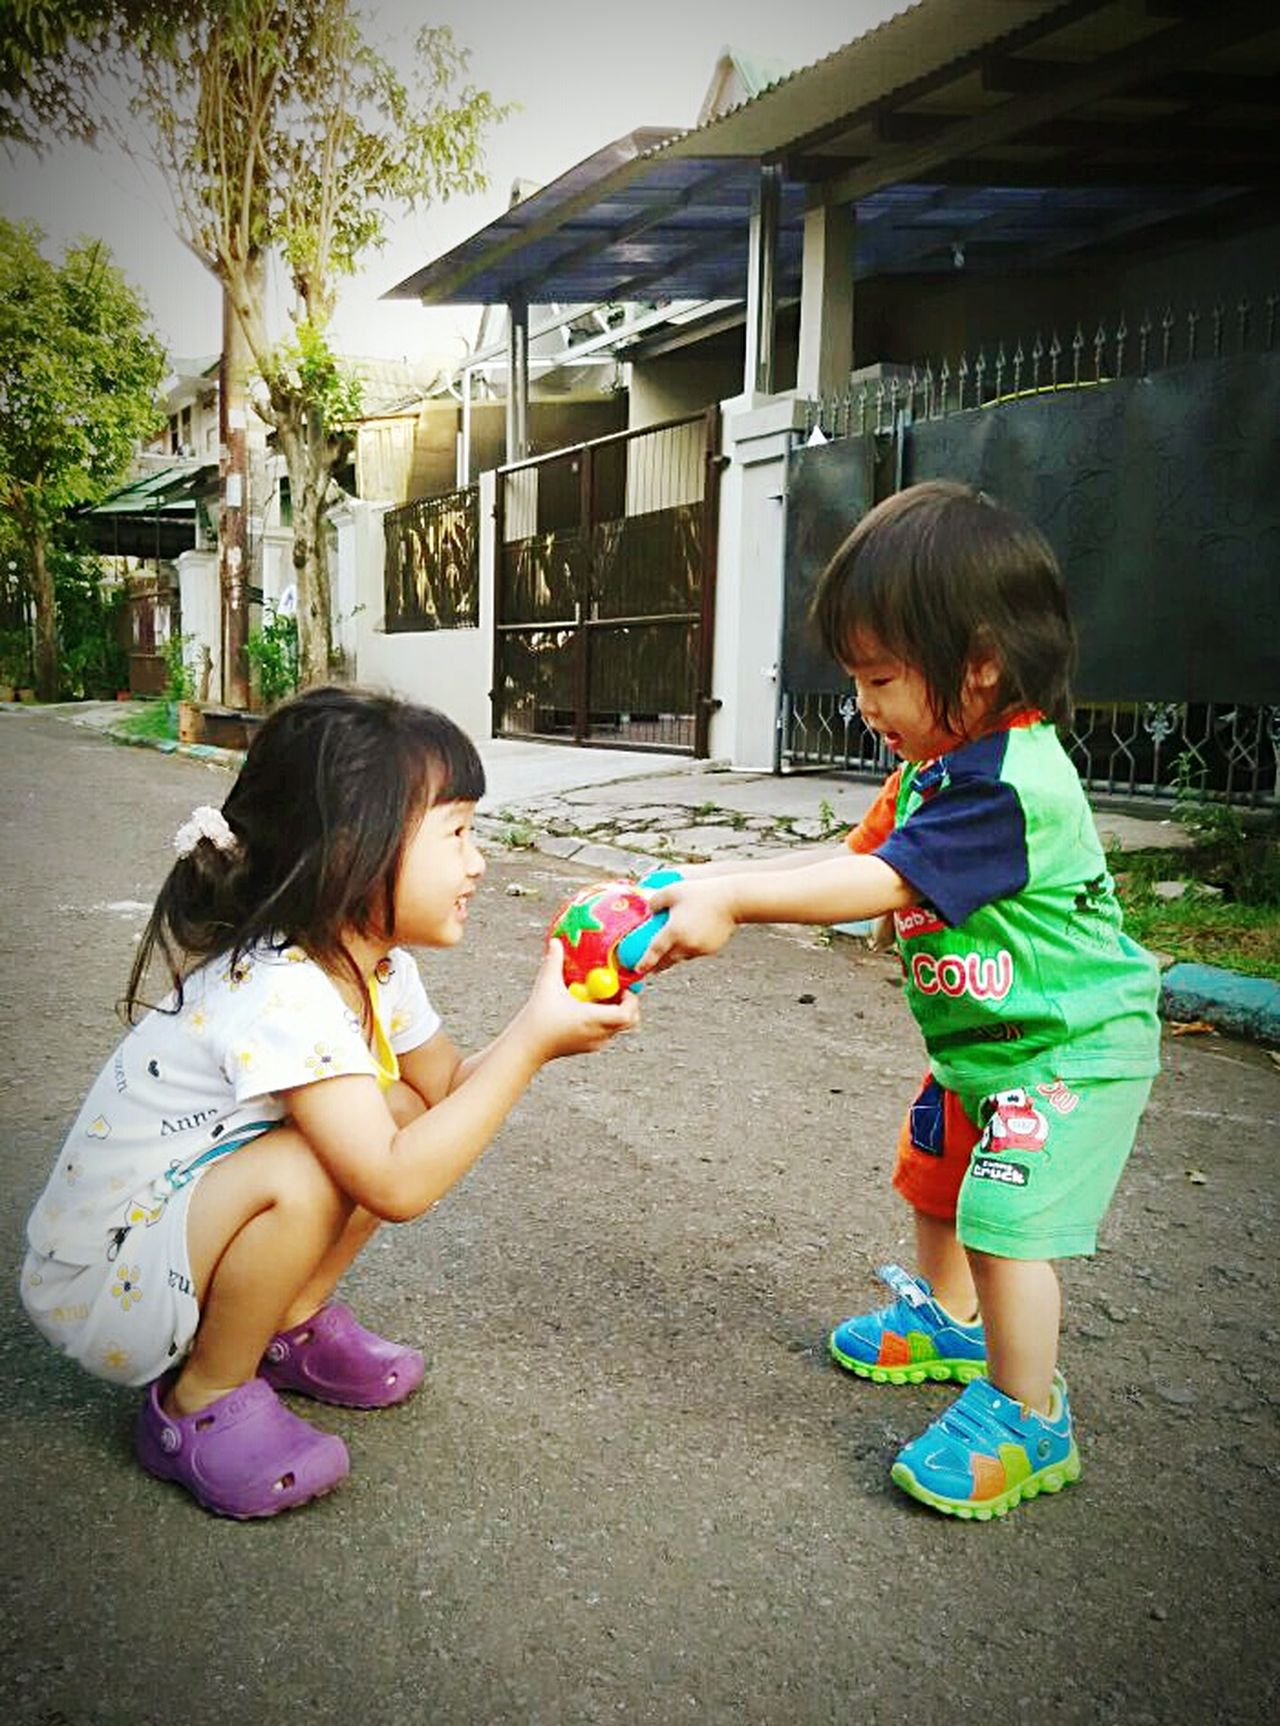 Enjoy The New Normal sisters sharing Child Girls Full Length Outdoors Friendship Childhood Bonding Togetherness